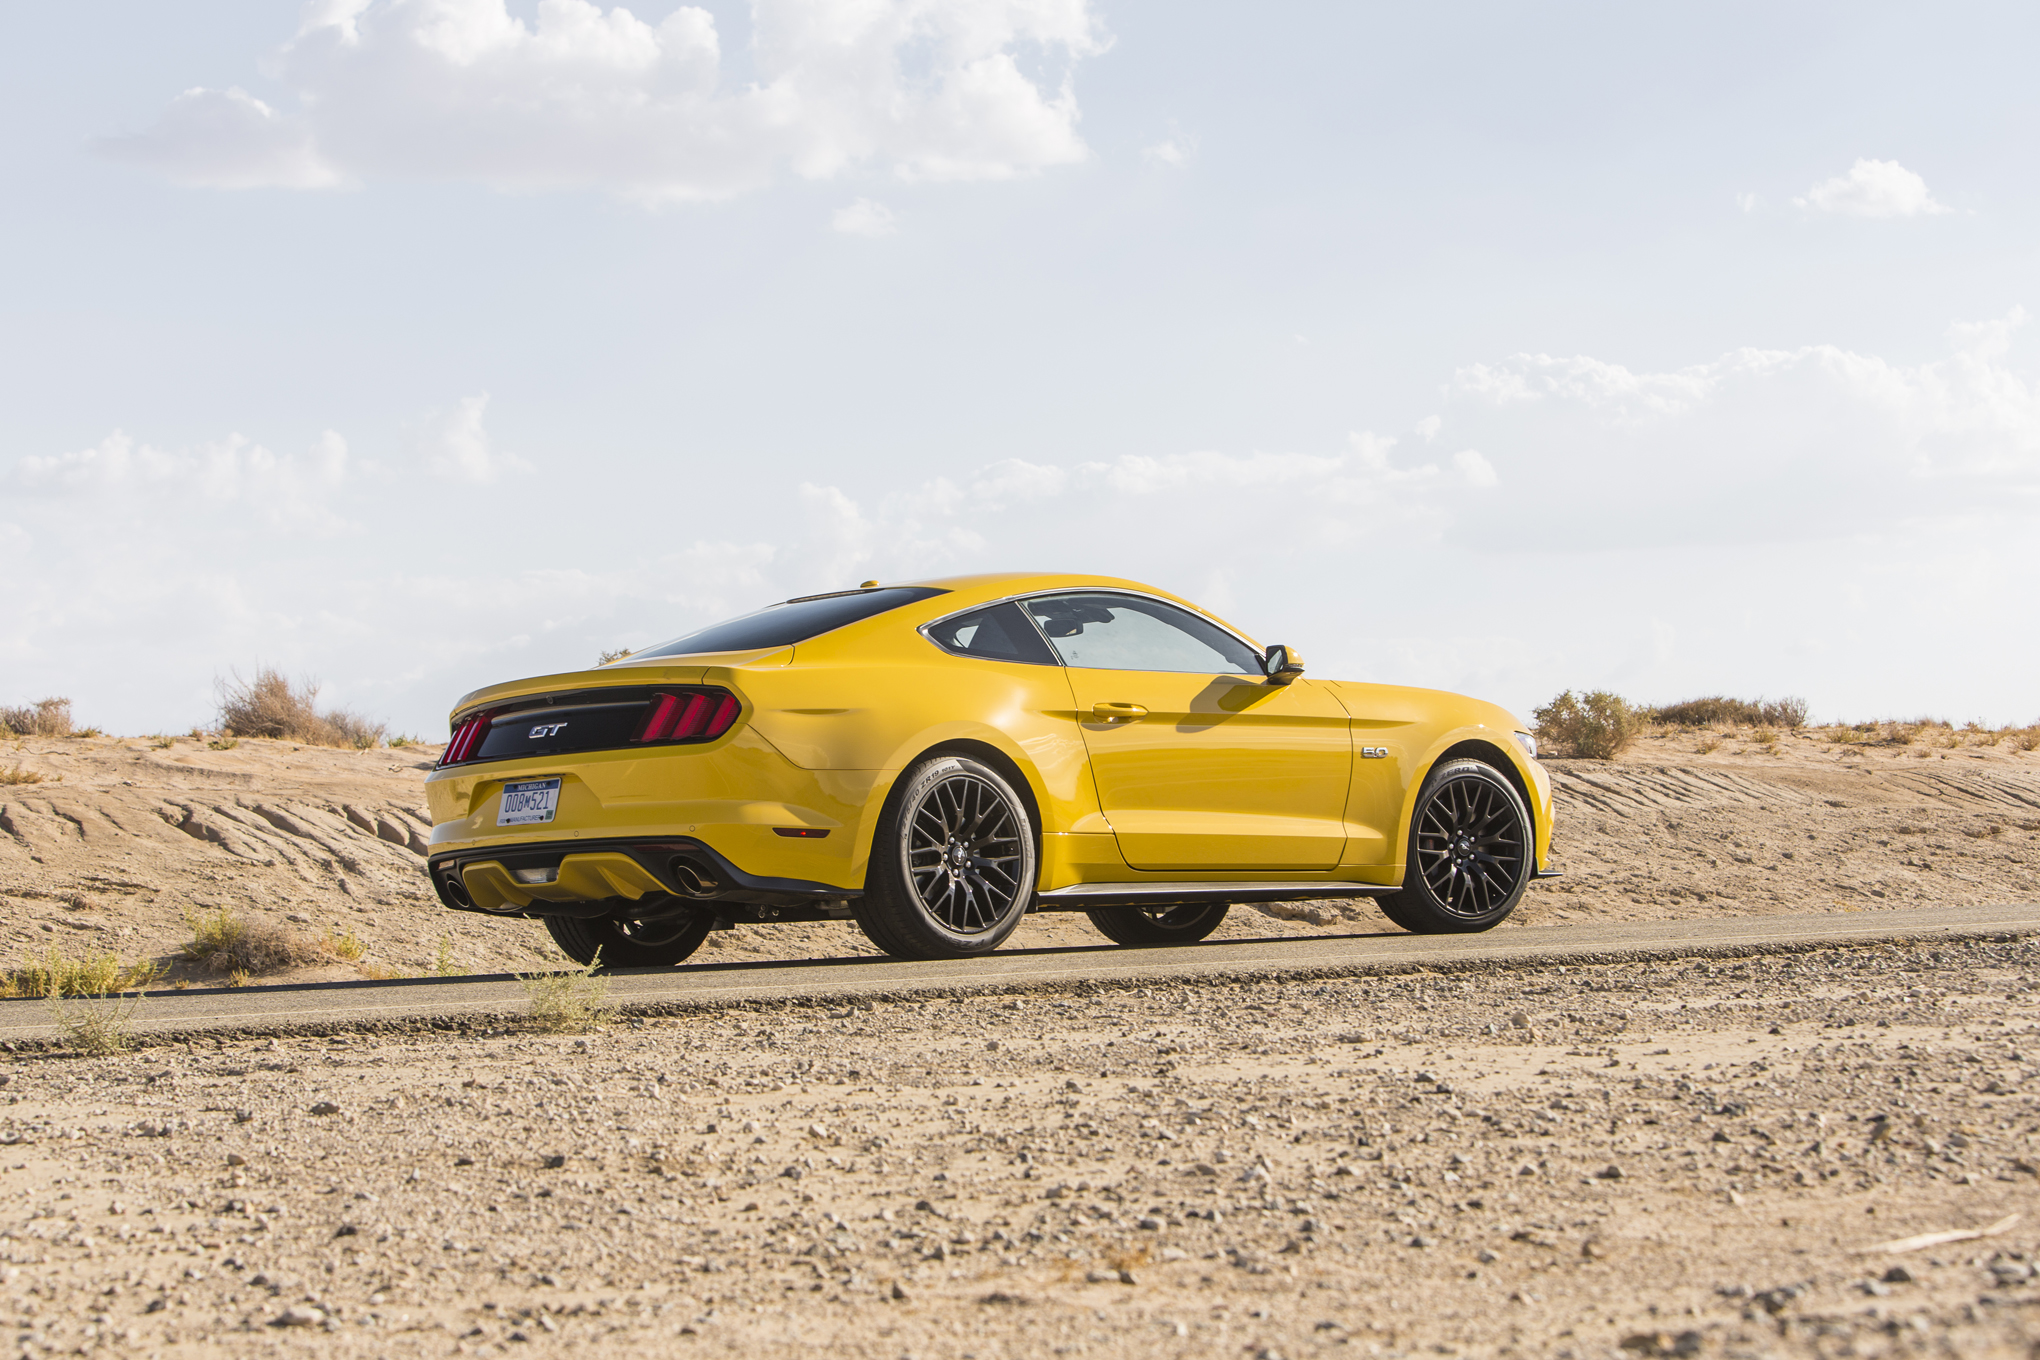 2015 Ford Mustang GT Rear Side Photo